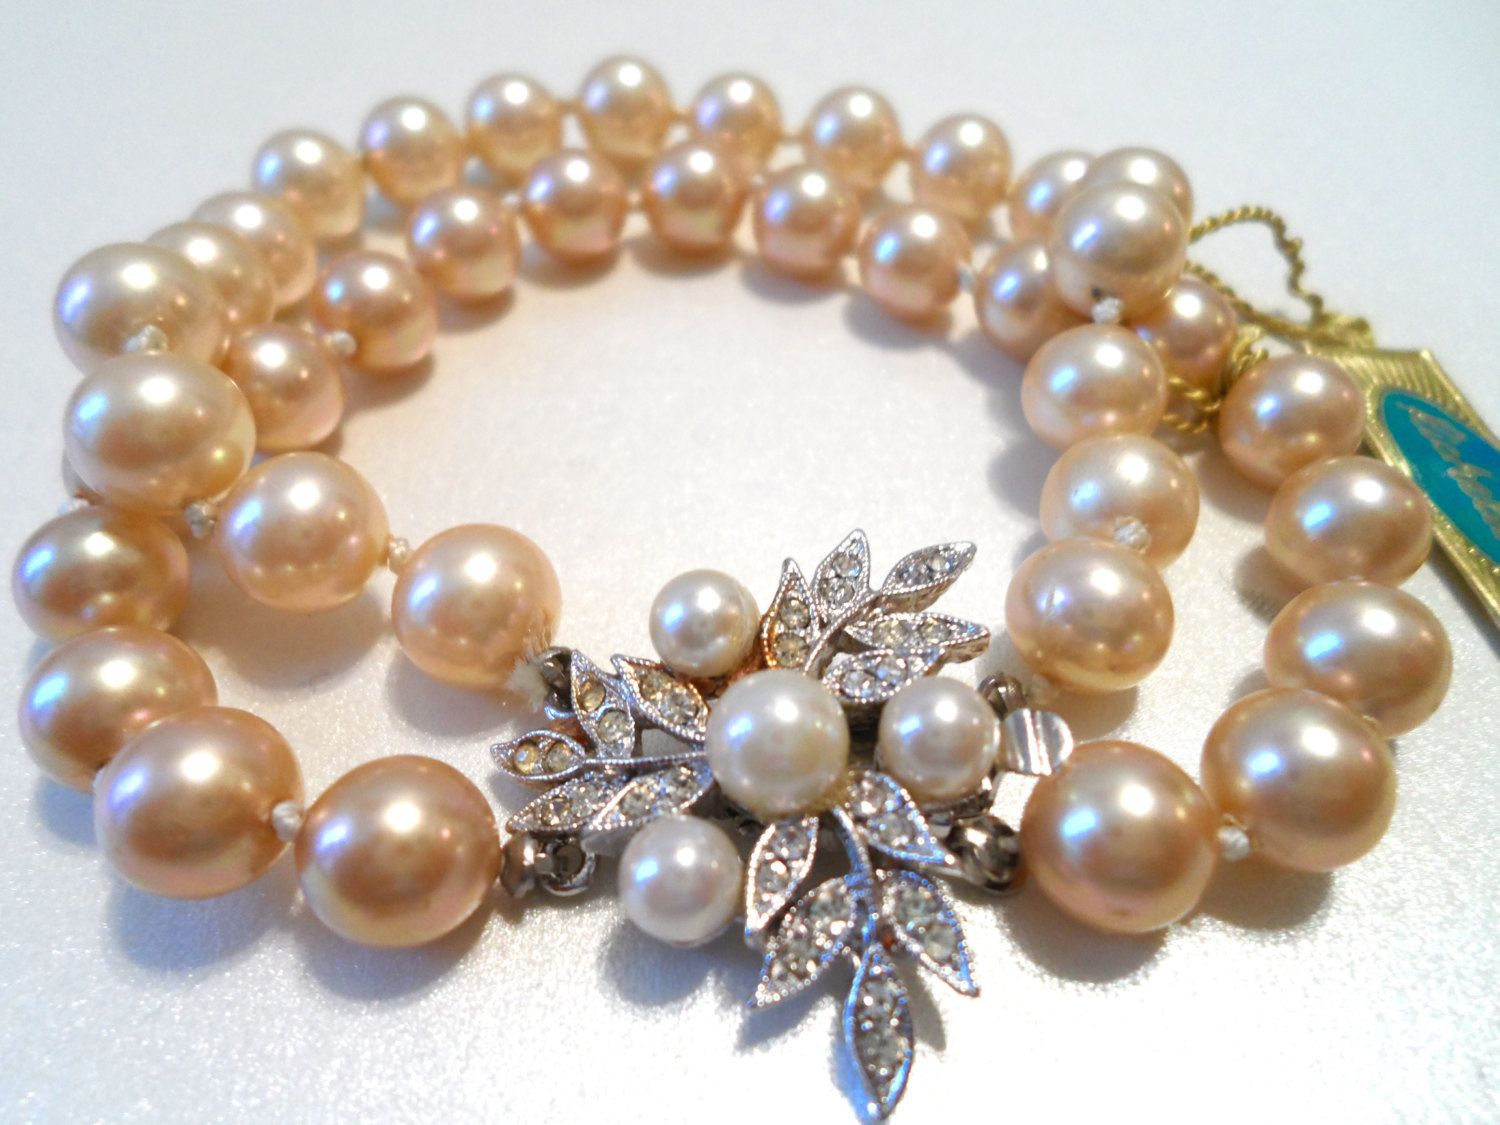 24dd17a2dbf8f Vintage Ivory Faux Pearl Double Strand Bracelet Rhinestone and Faux ...